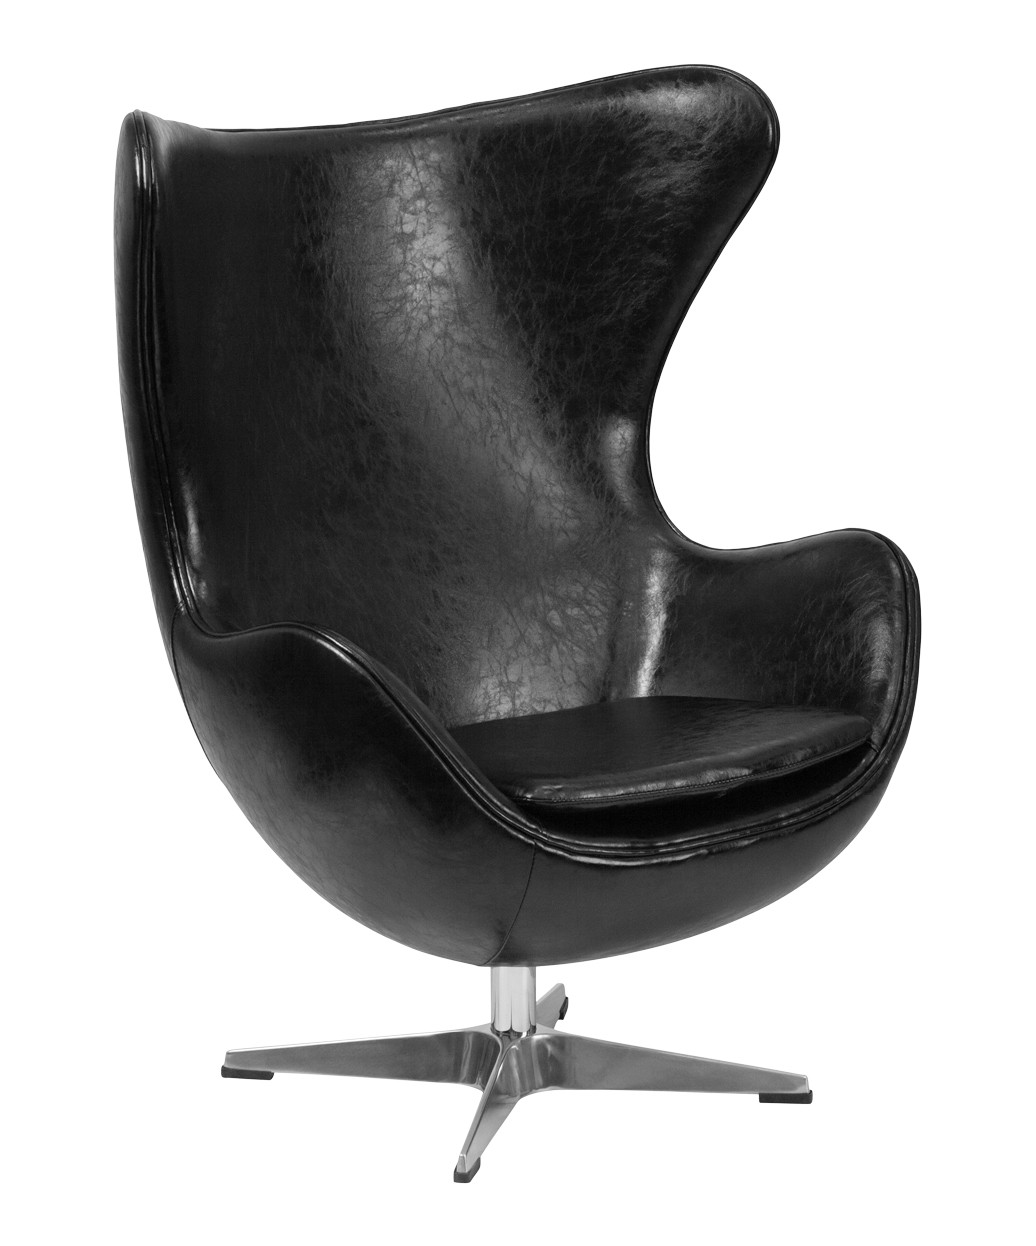 Black Leather Egg Chair With TiltLock Mechanism